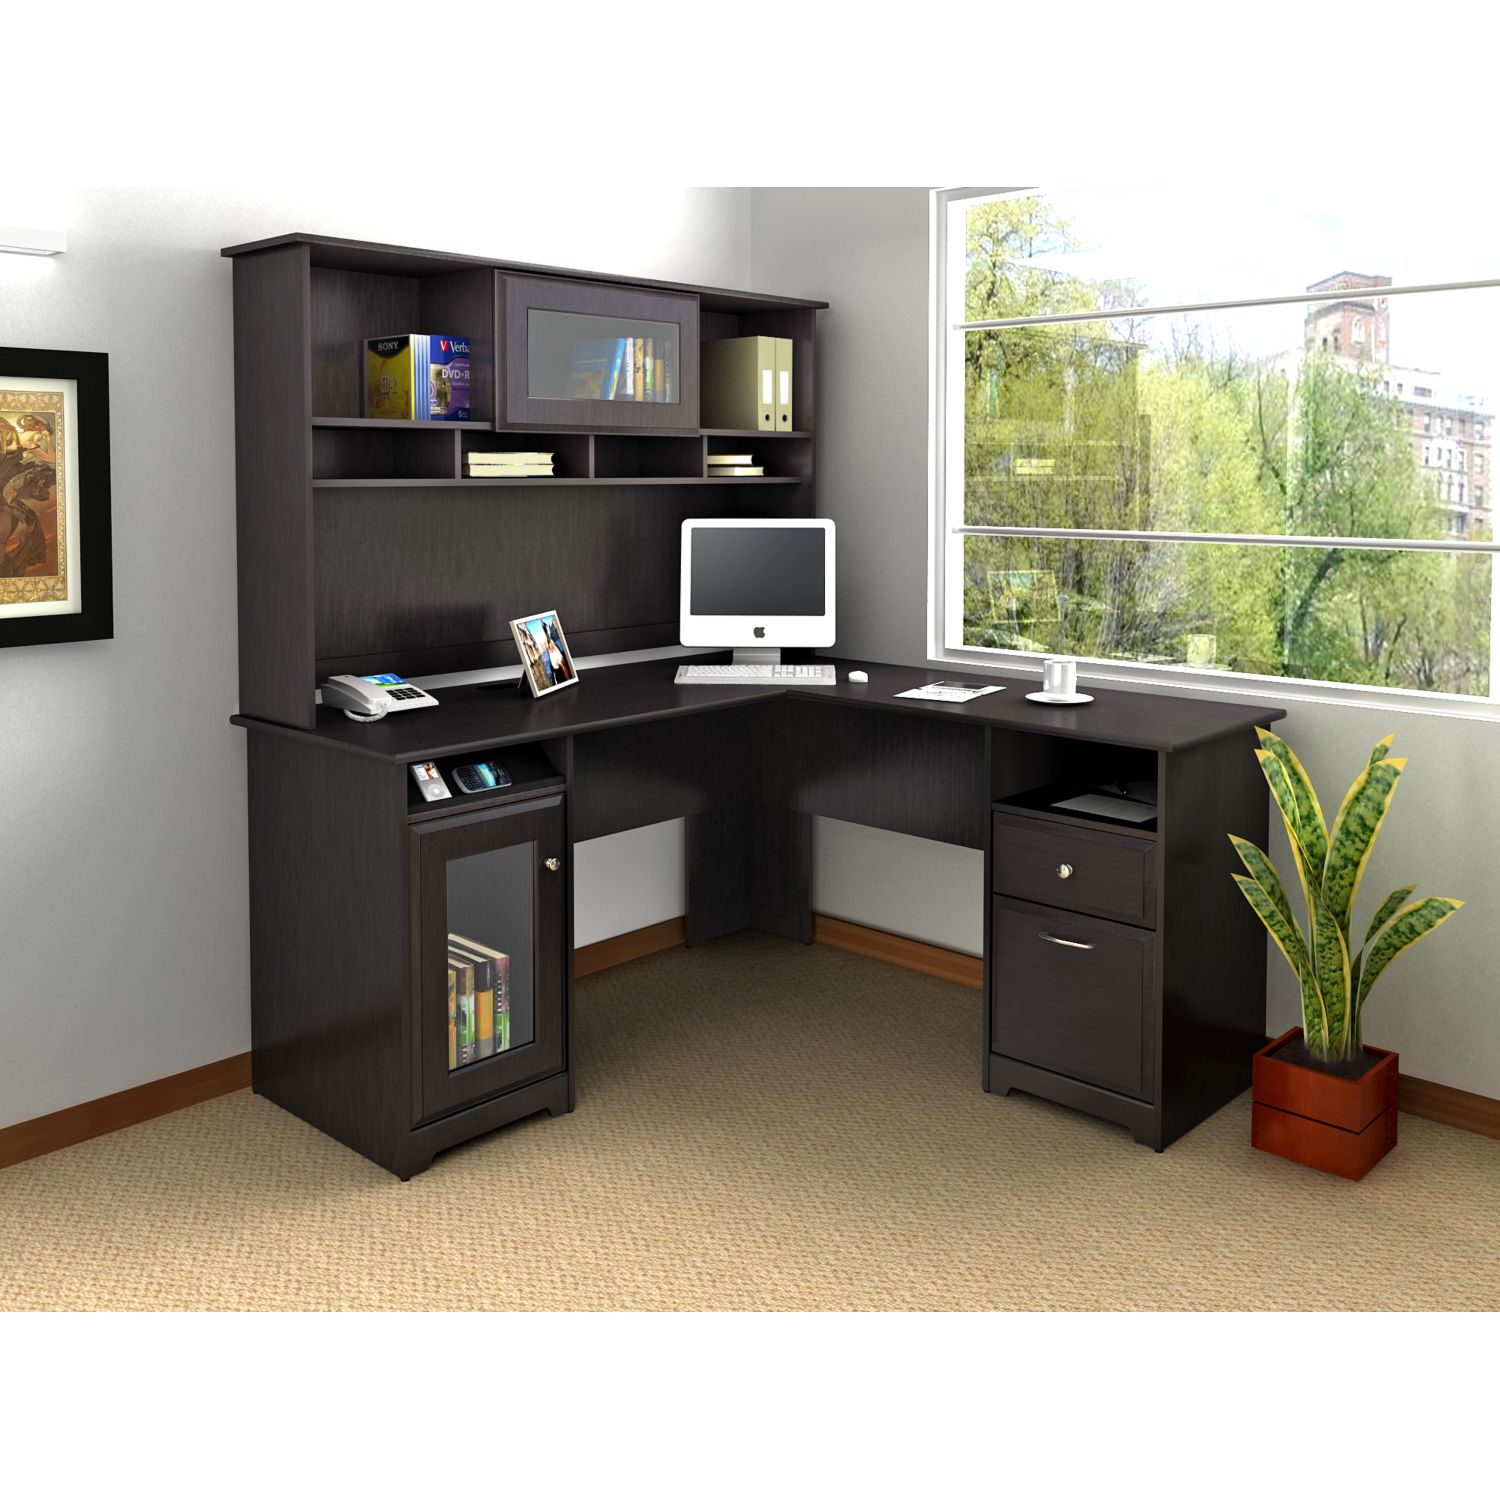 home office decor with black L Shaped Desk With Hutch plus computer set  plus glass window. Furniture  Stunning L Shaped Desk With Hutch For Office Or Home